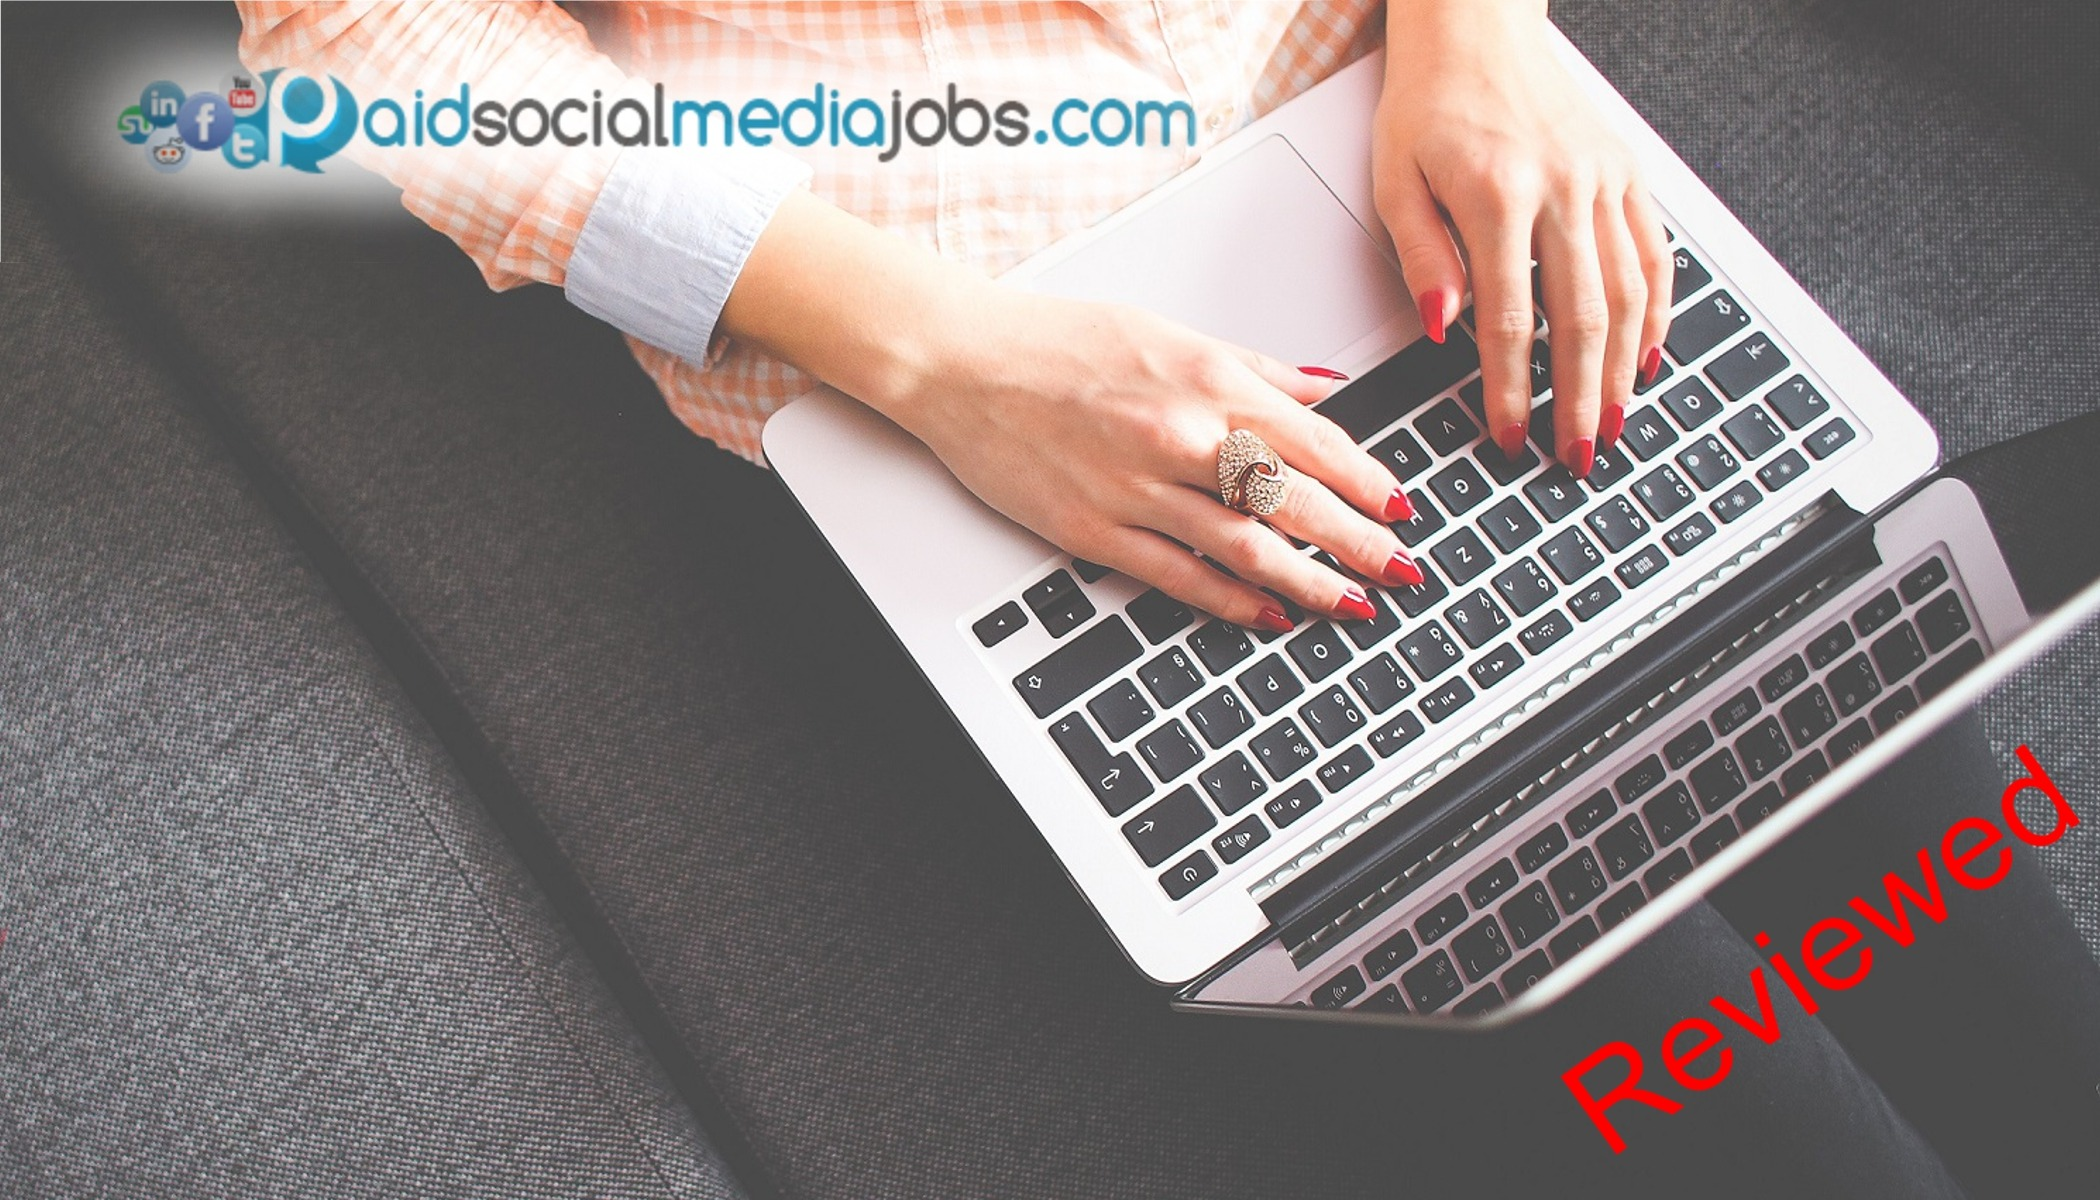 What is Paid Social Media Jobs about? Scam or Legit? [Review]